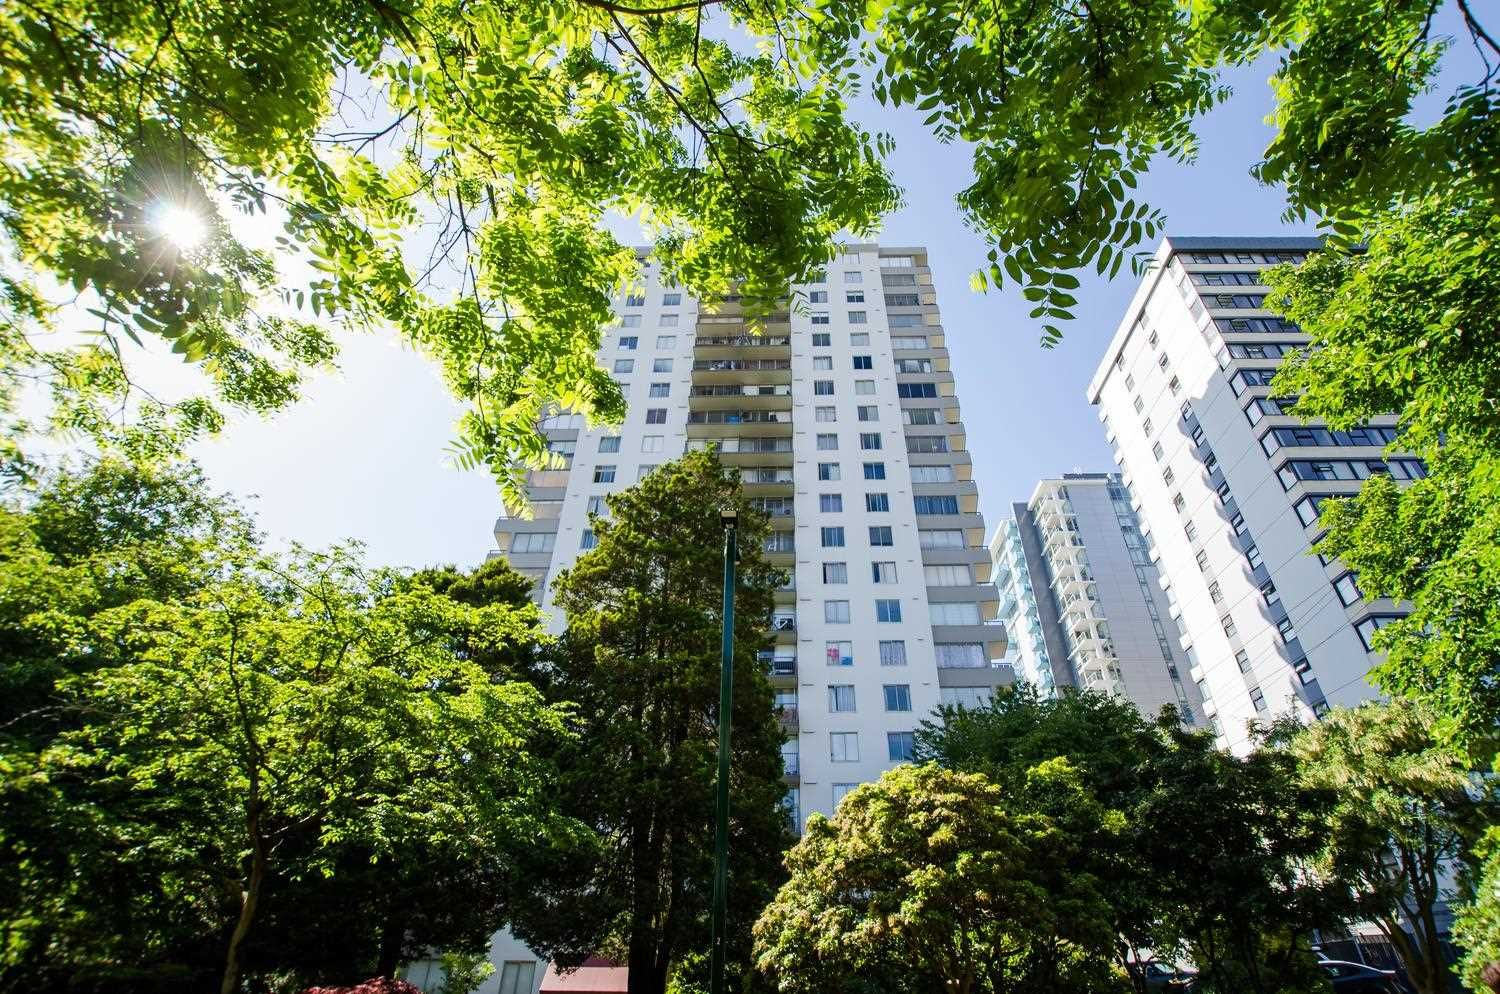 Main Photo: 1906 1251 CARDERO STREET in Vancouver: West End VW Condo for sale (Vancouver West)  : MLS®# R2592244